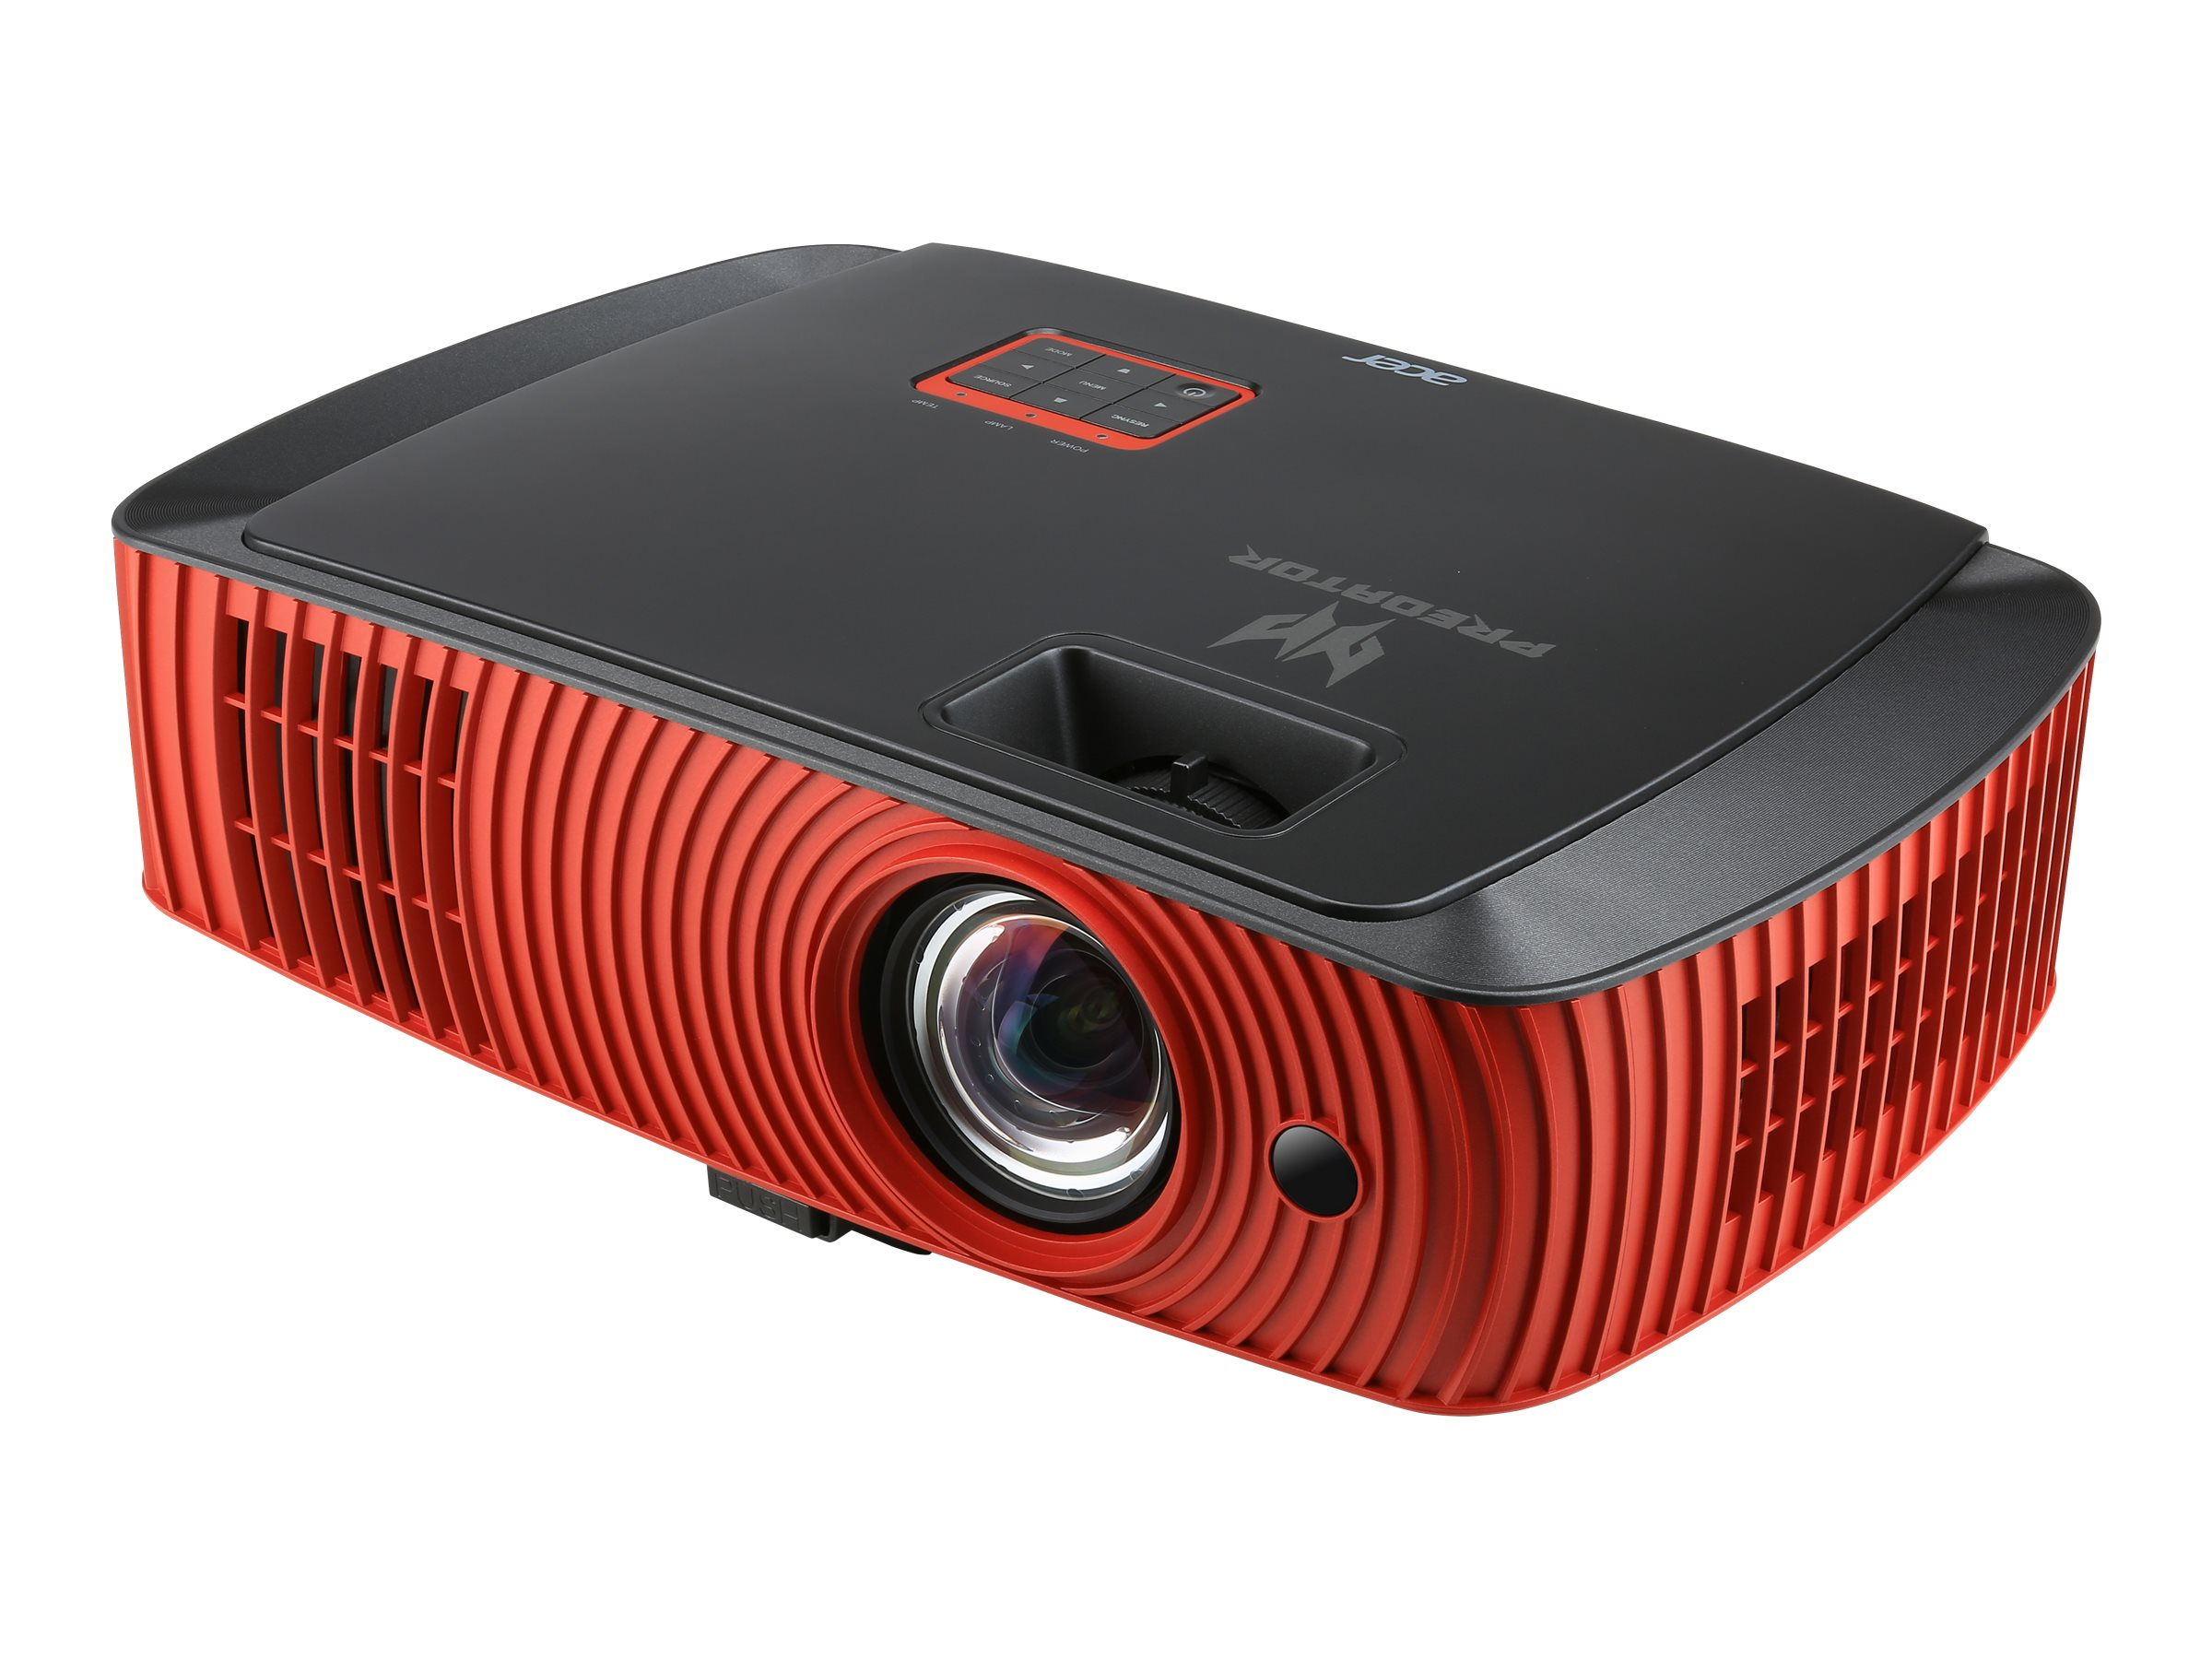 Acer Predator Z650 1080p 3D DLP Projector, 2200 Lumens, Black Red, MR.JMS11.008, 31957833, Projectors